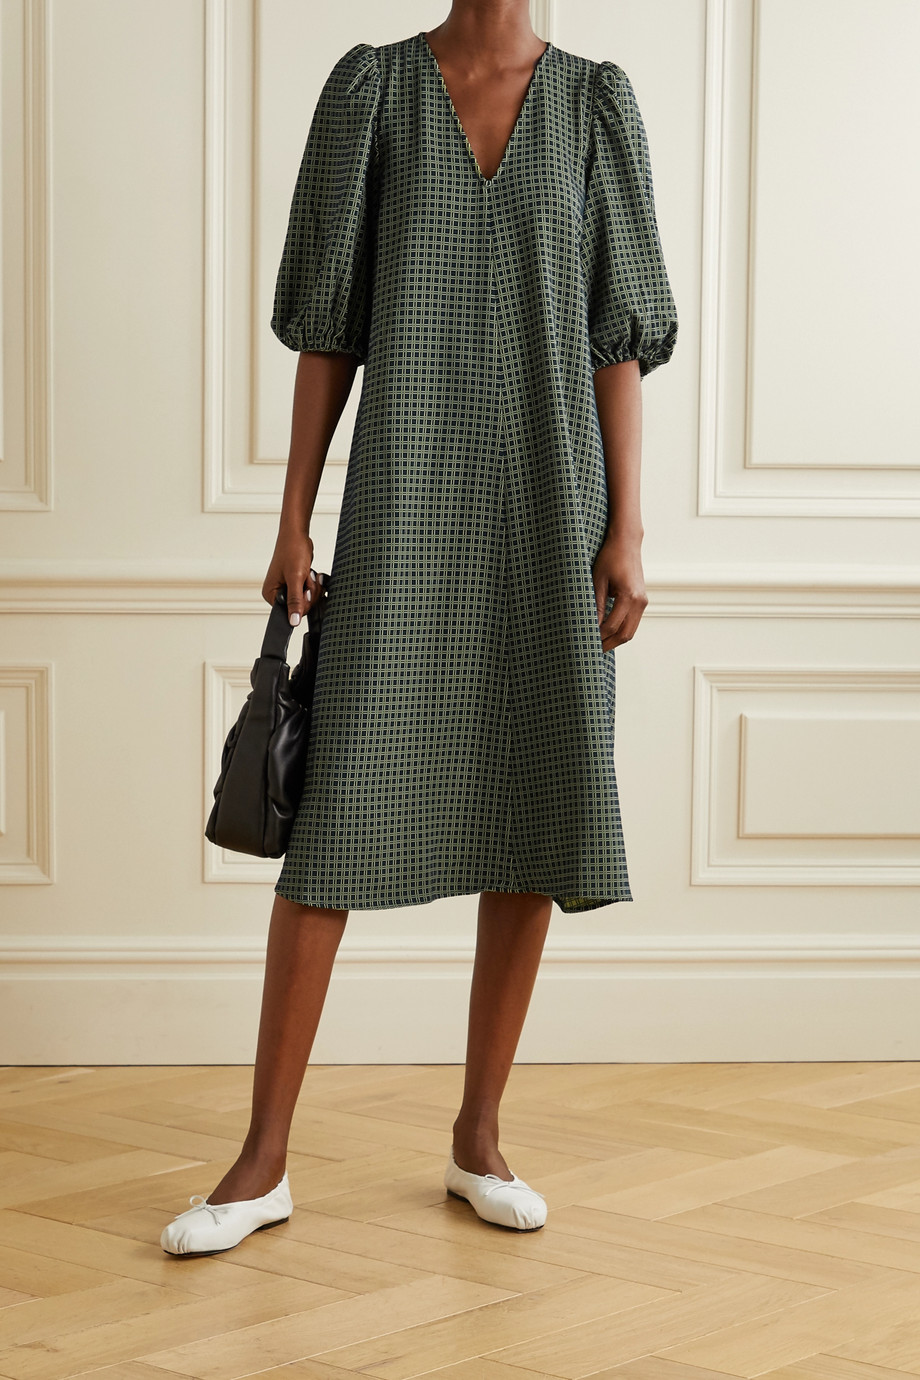 Stine Goya + NET SUSTAIN Mavelin jacquard midi dress